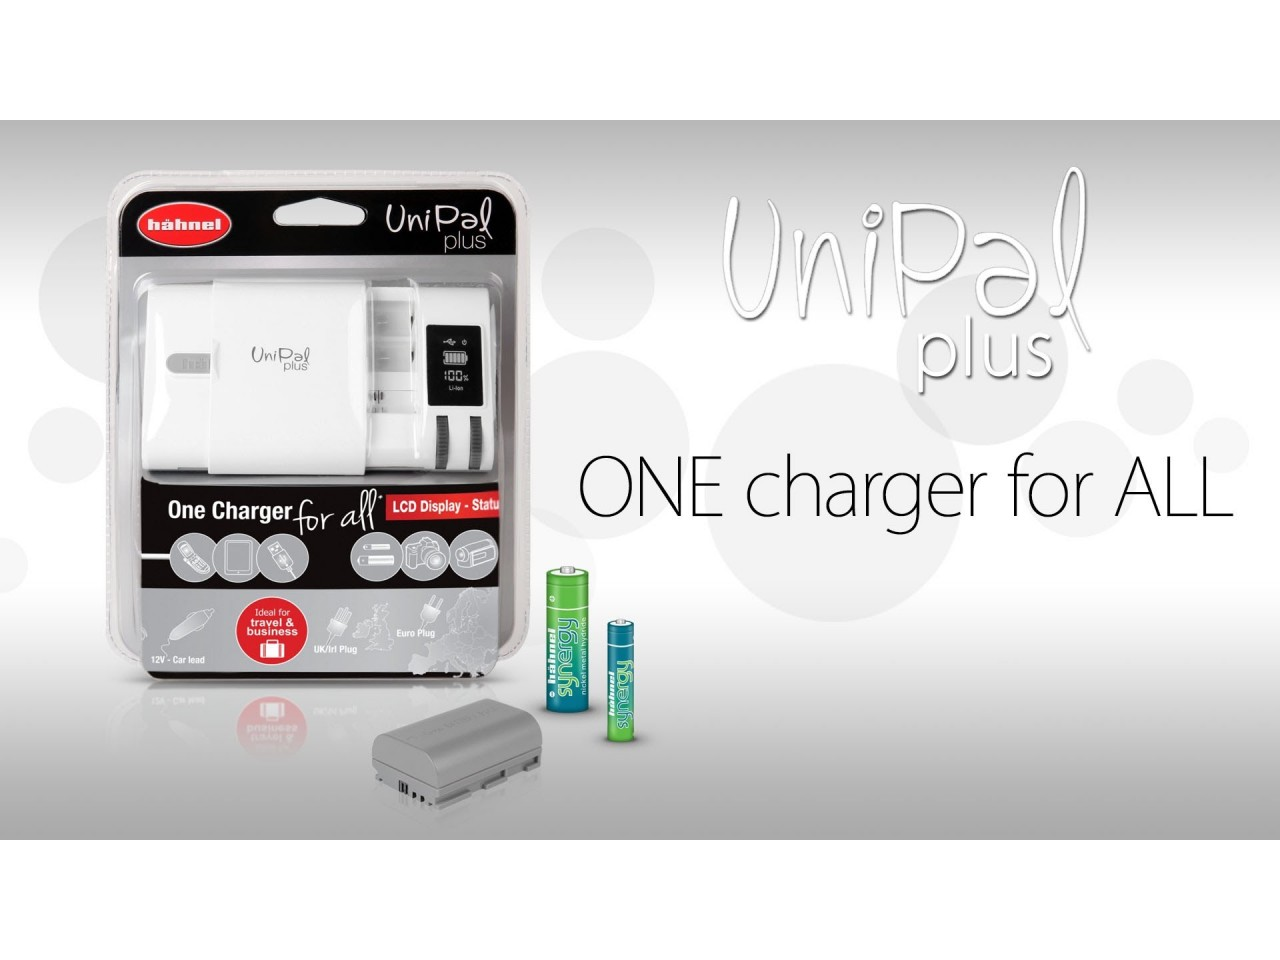 HAHNEL UNIPAL UNIVERSAL LADER Power.no